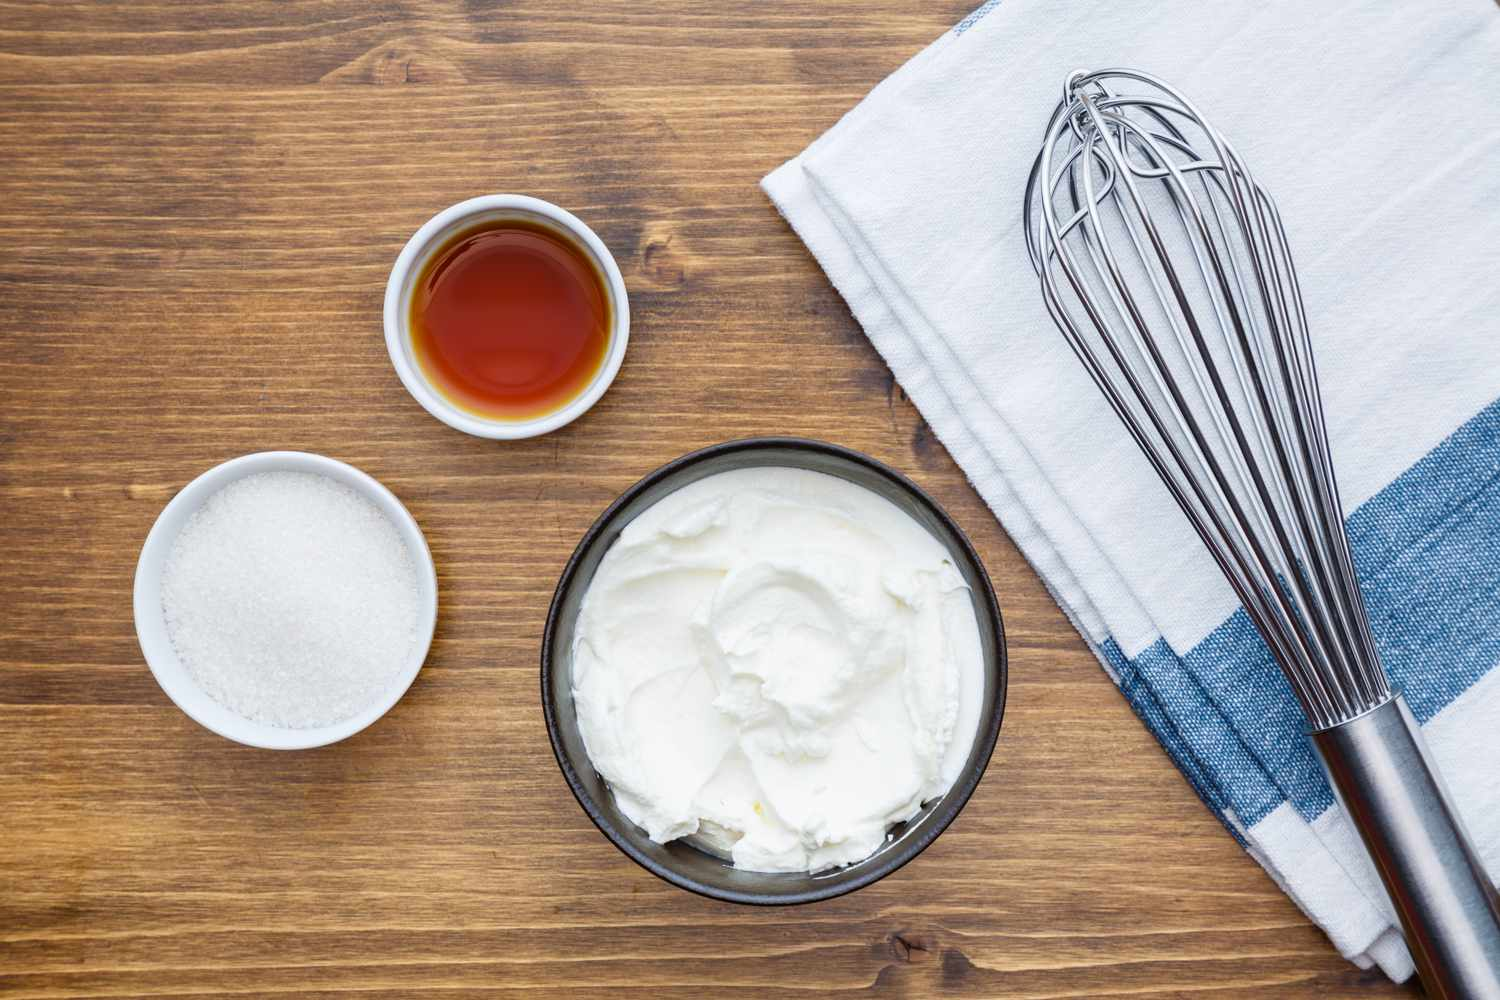 Sour cream topping ingredients